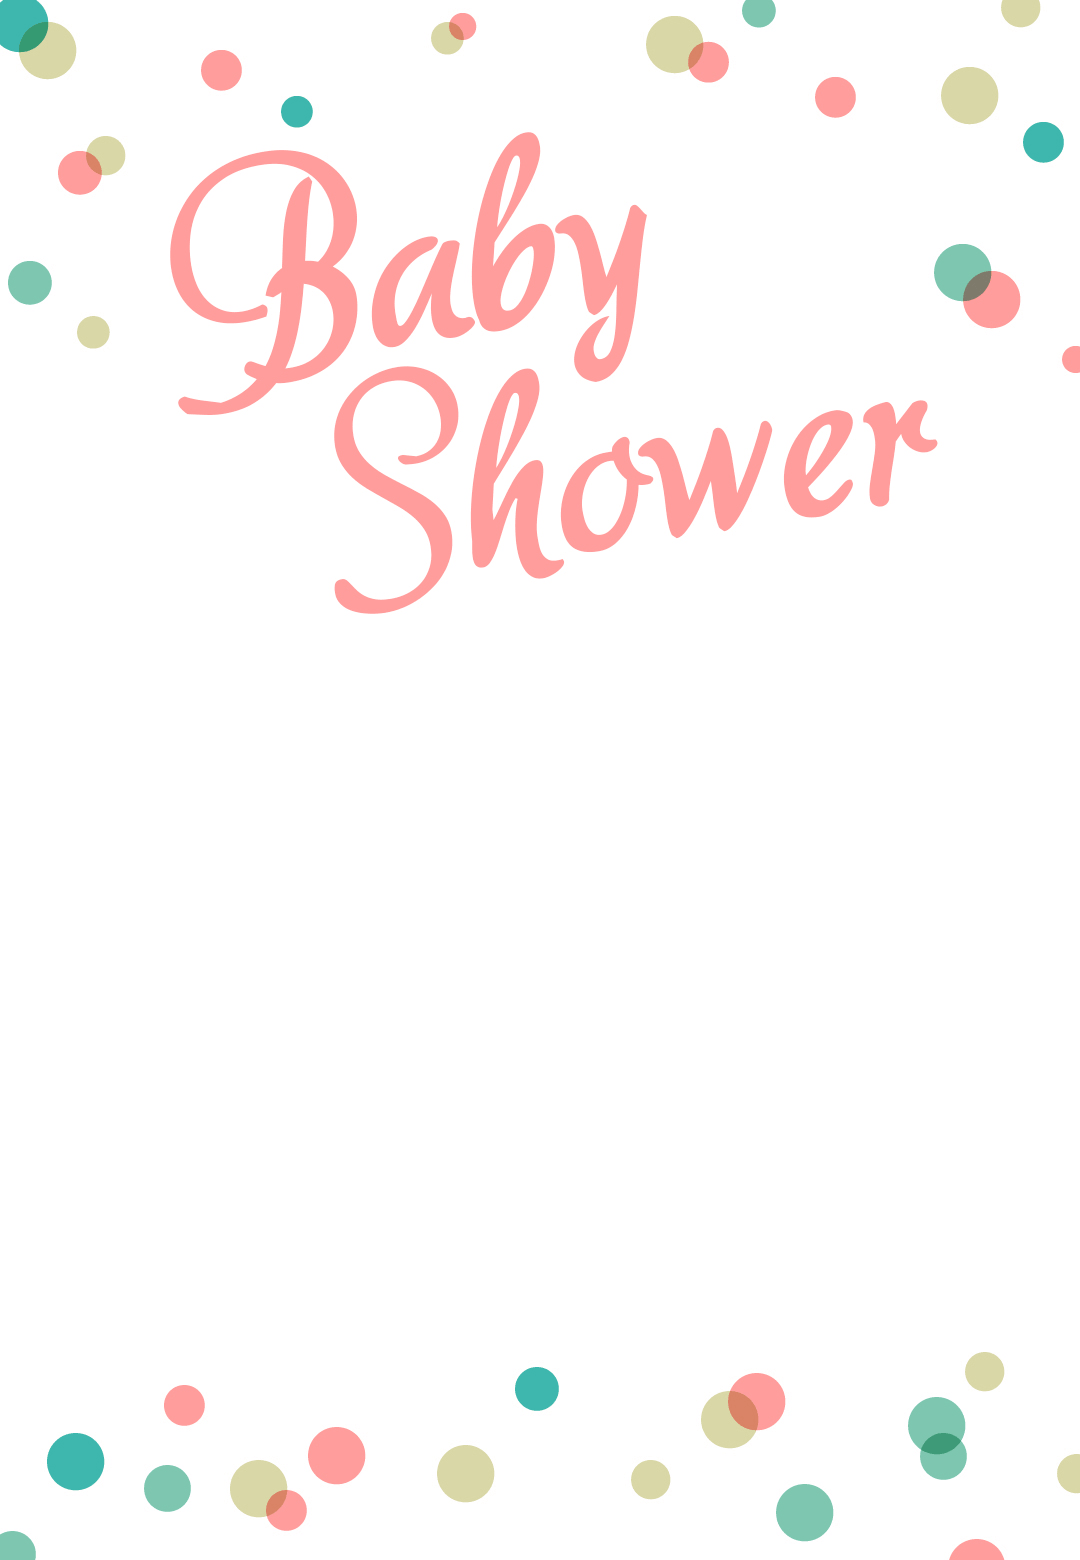 Dancing Dots Borders - Free Printable Baby Shower Invitation Template |  Greetings Island